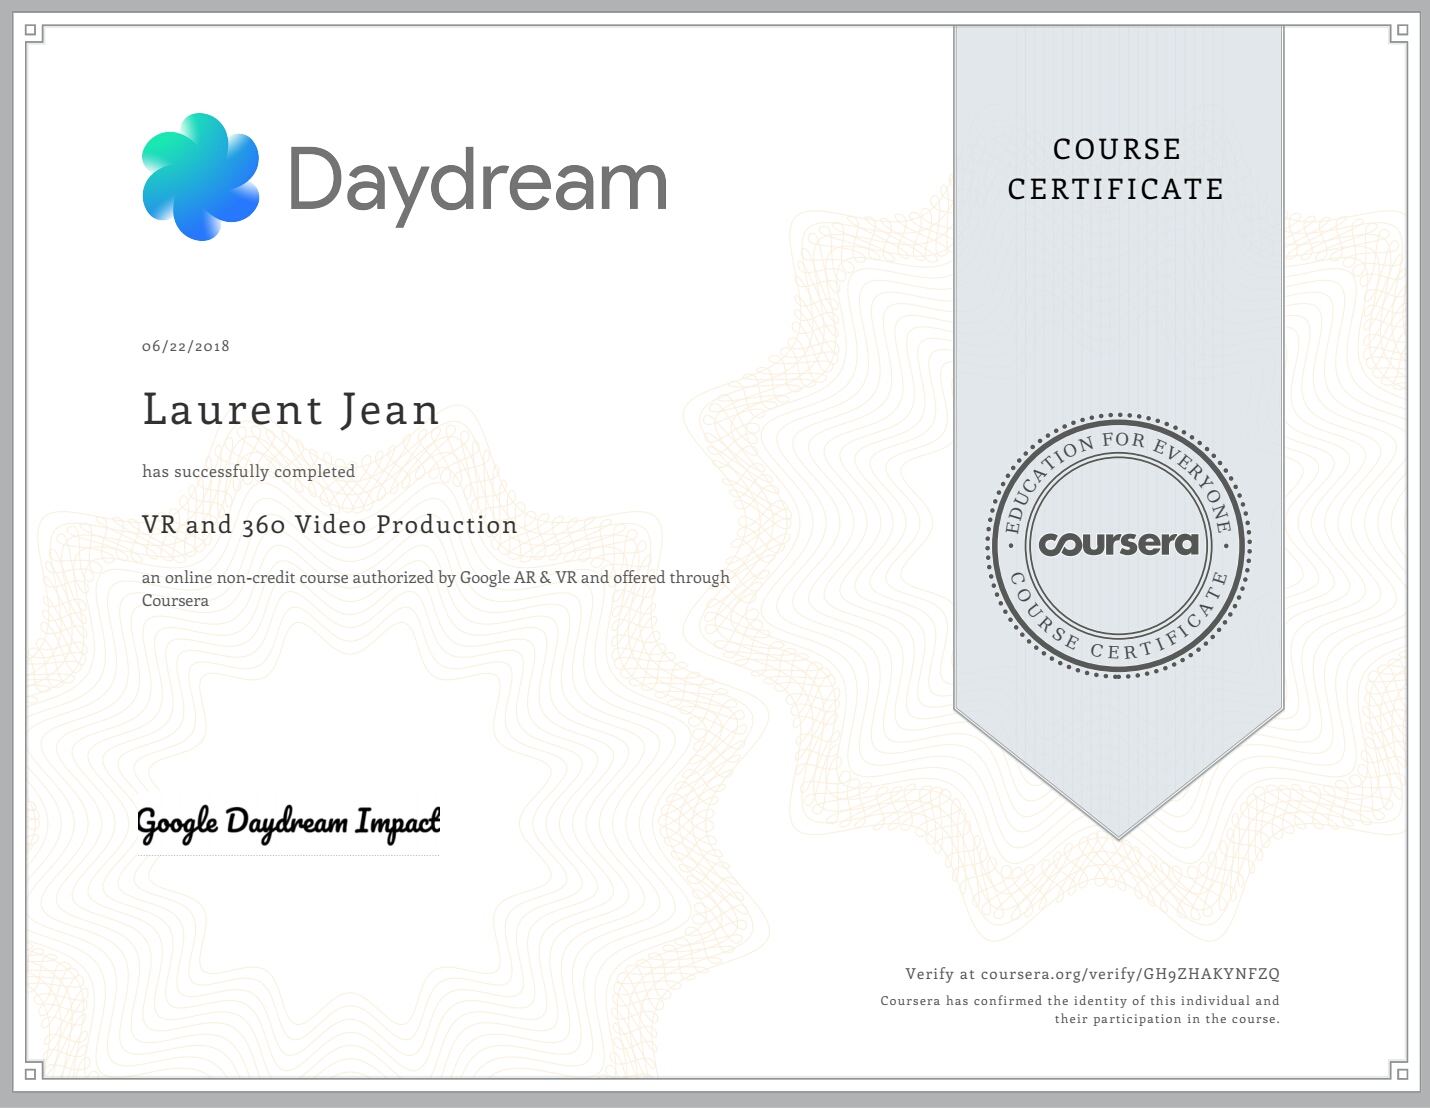 certification video360 VR google daydream